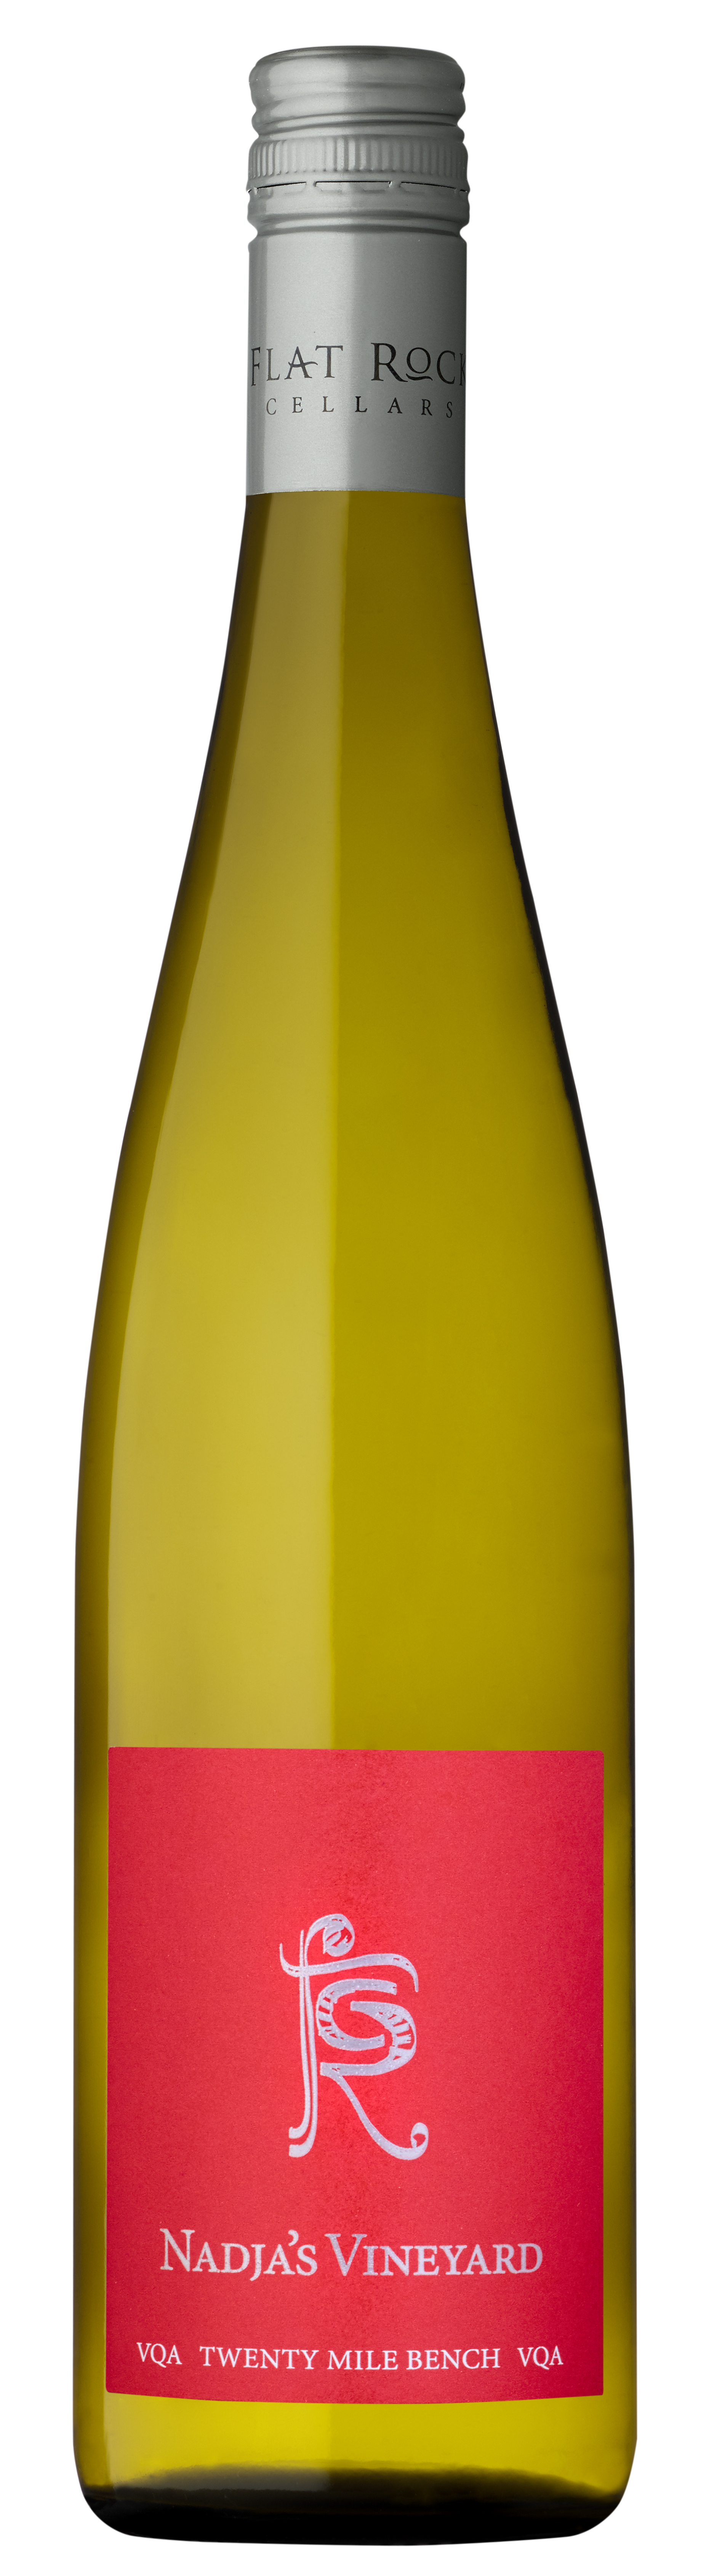 Product Image for 2018 Nadja's Vineyard Riesling